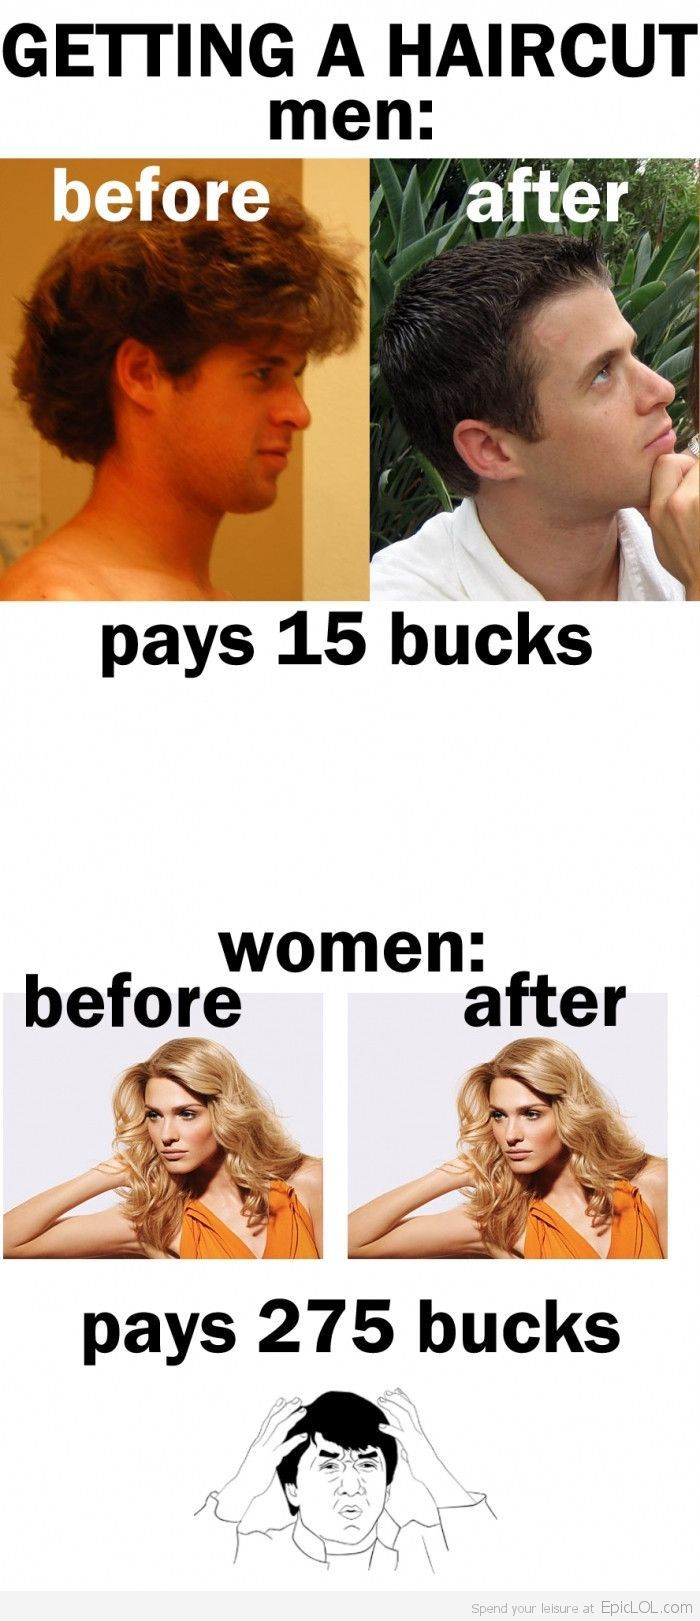 So True!!! Men vs Women - Getting A Hair Cut